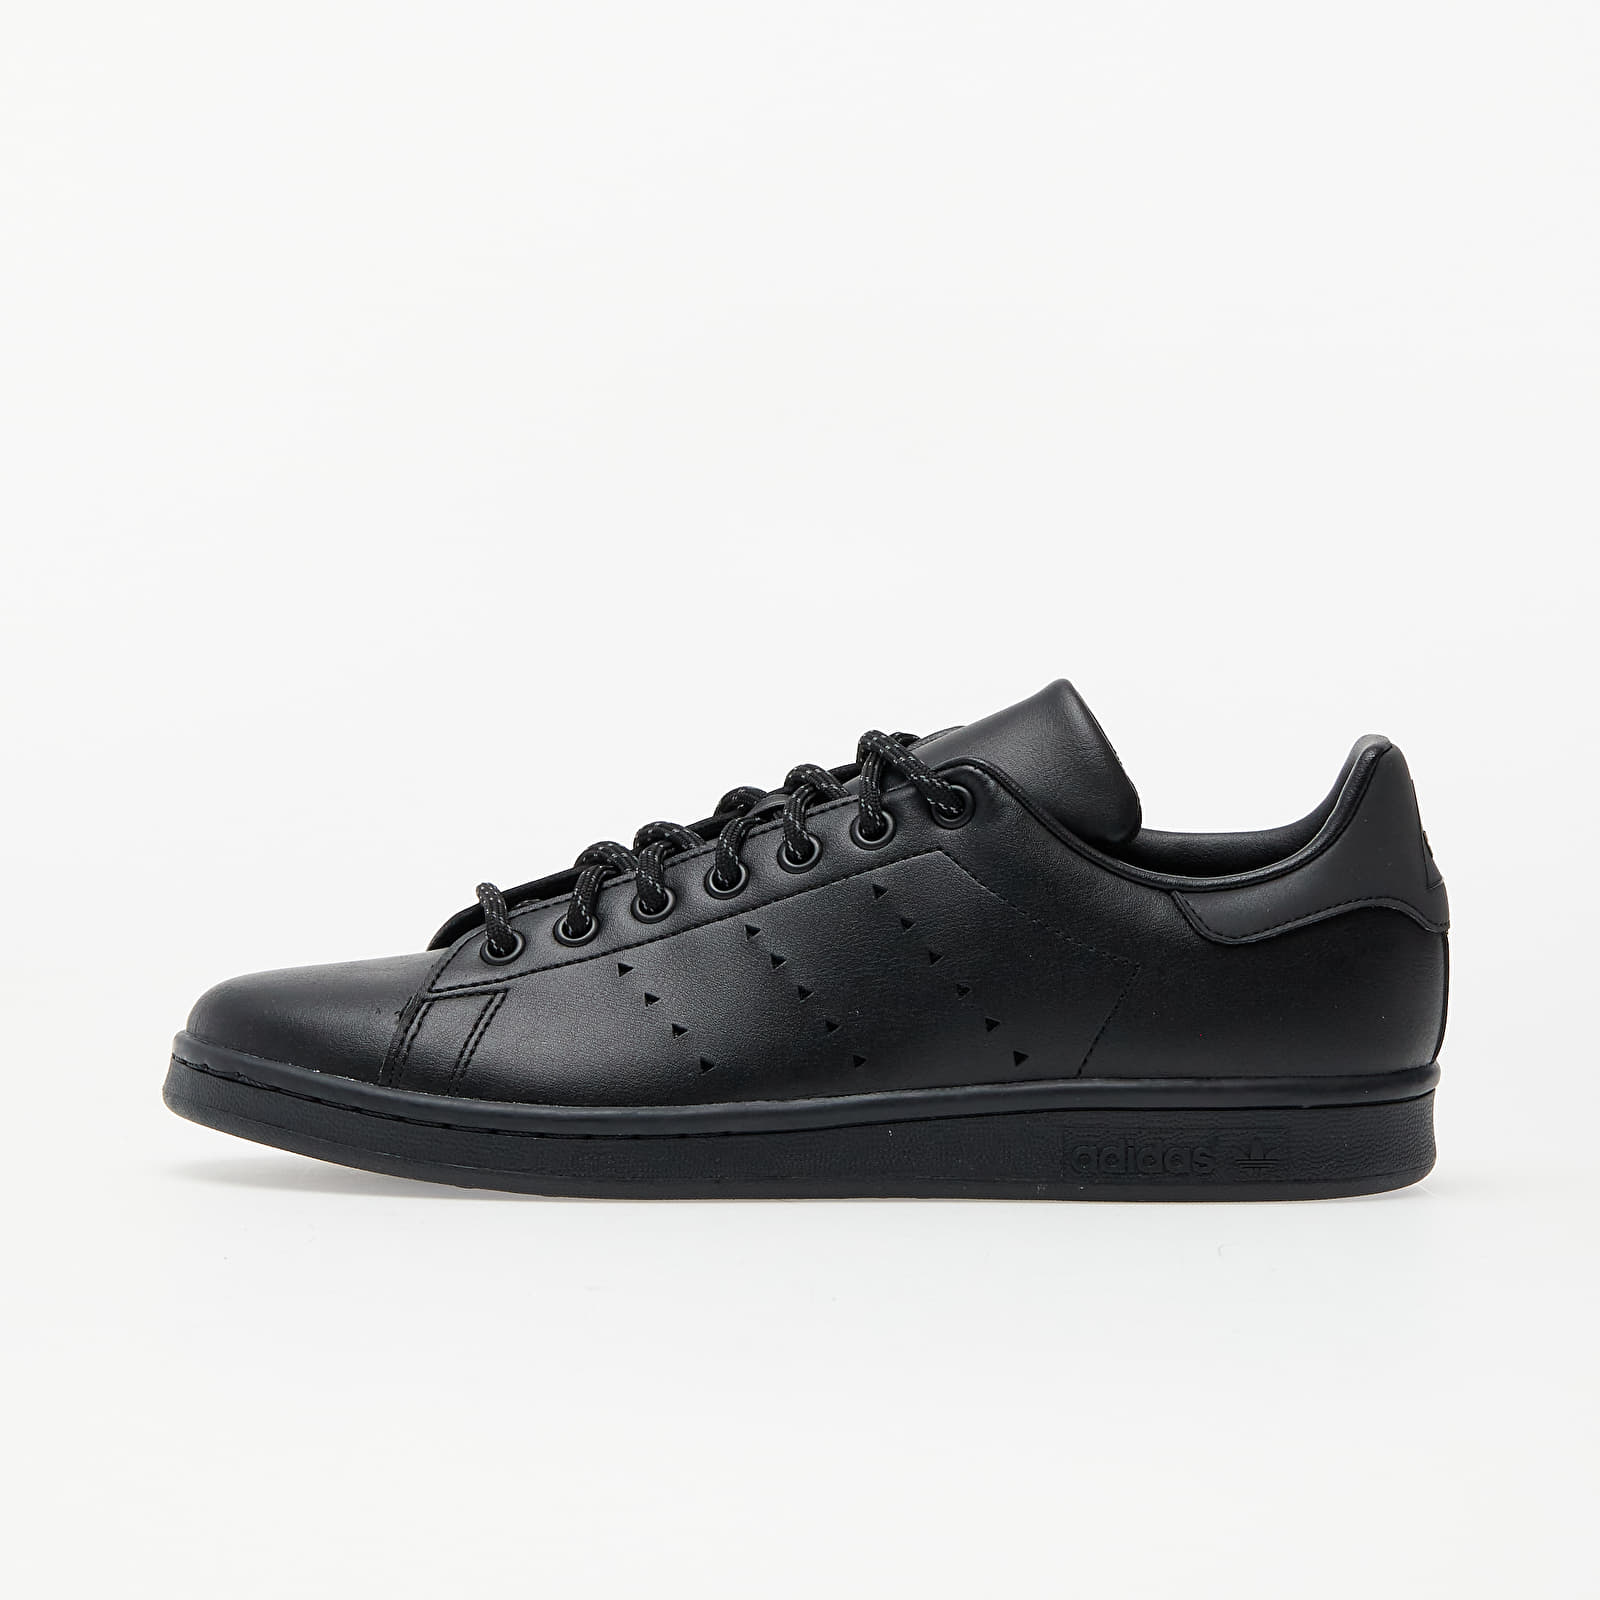 adidas x Pharrell Williams Stan Smith Core Black/ Core Black/ Core Black EUR 48